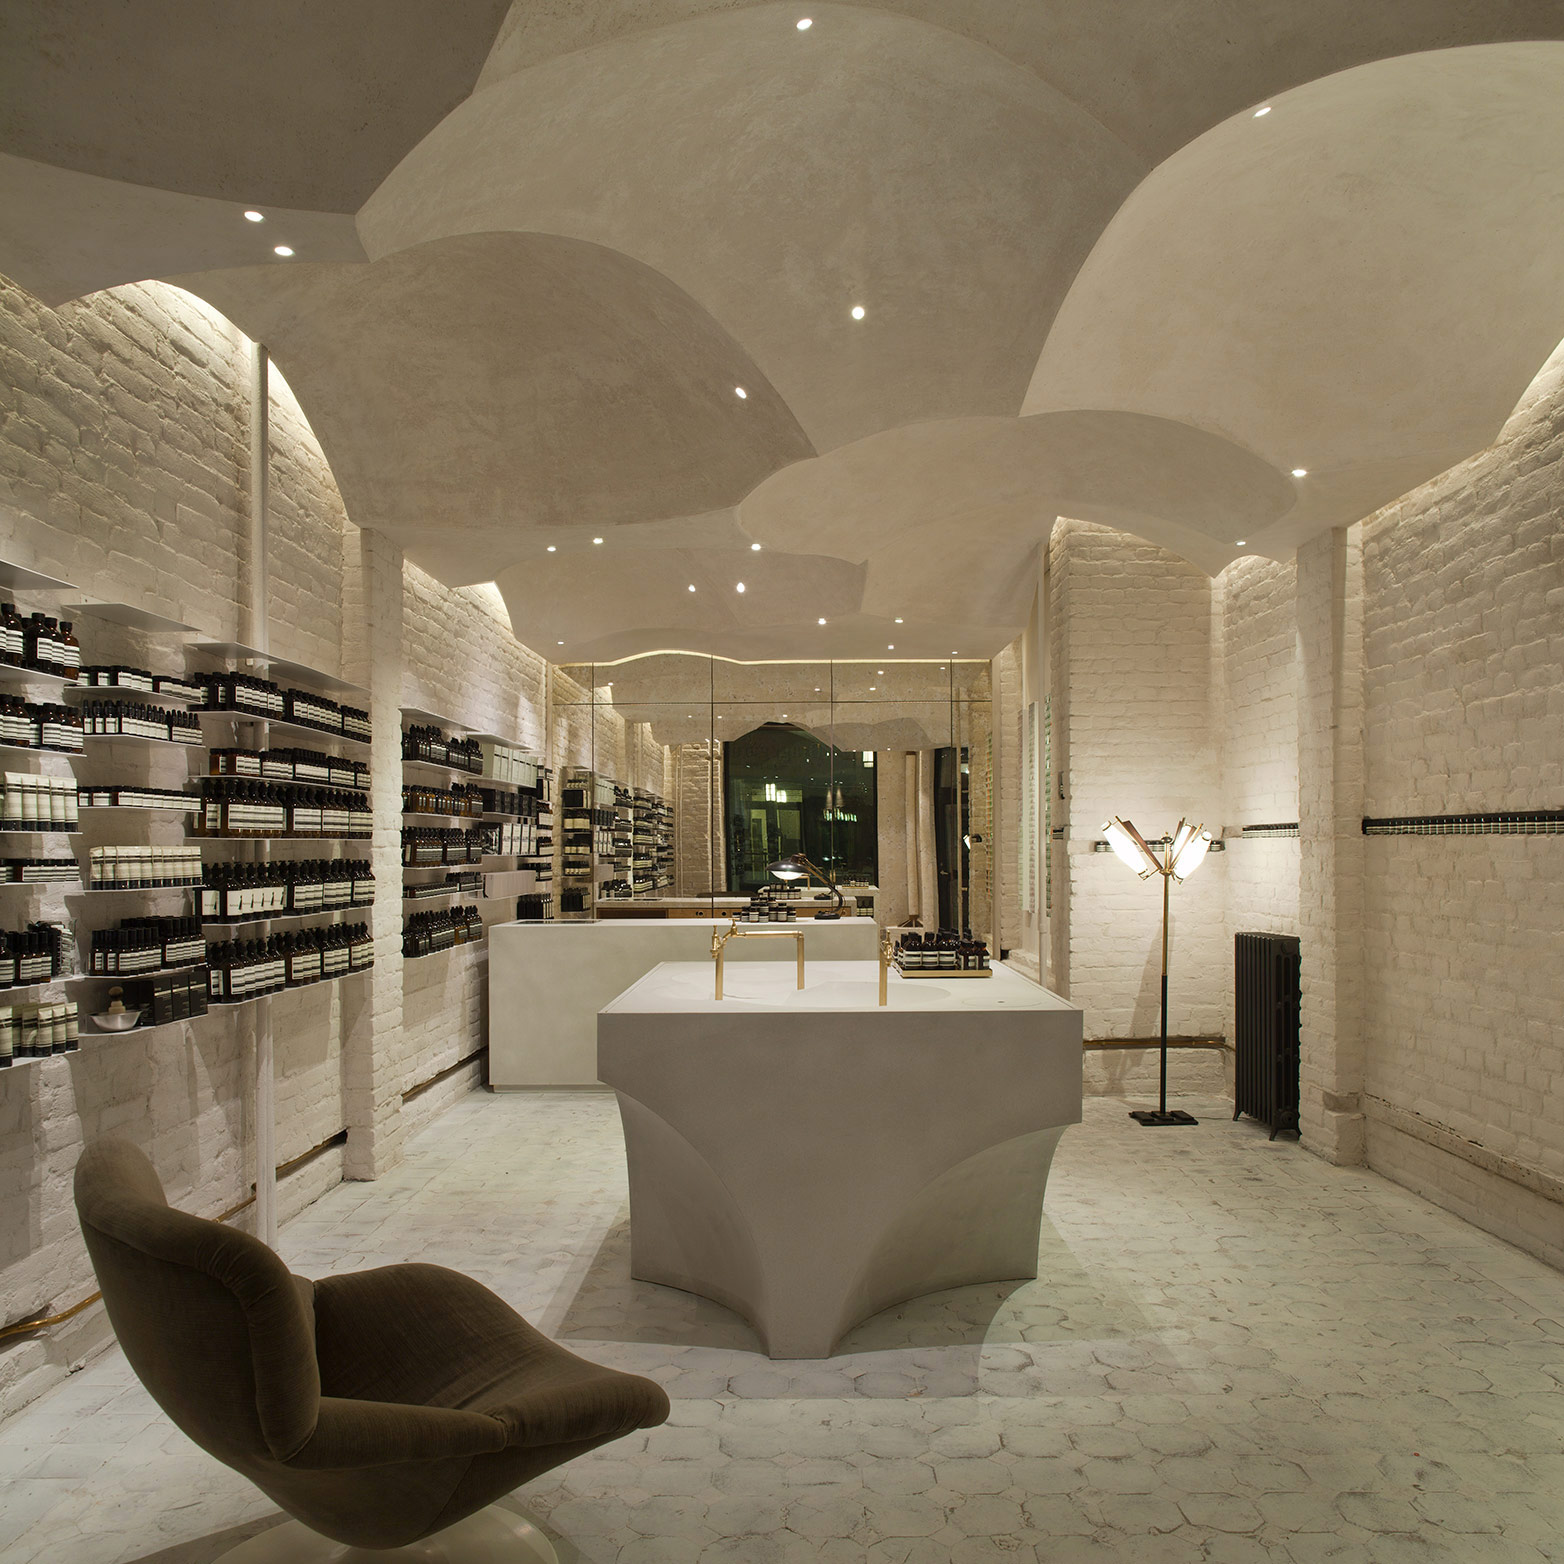 Ceiling Design Retail Aesop Creative Director Marsha Meredith On Design Craft